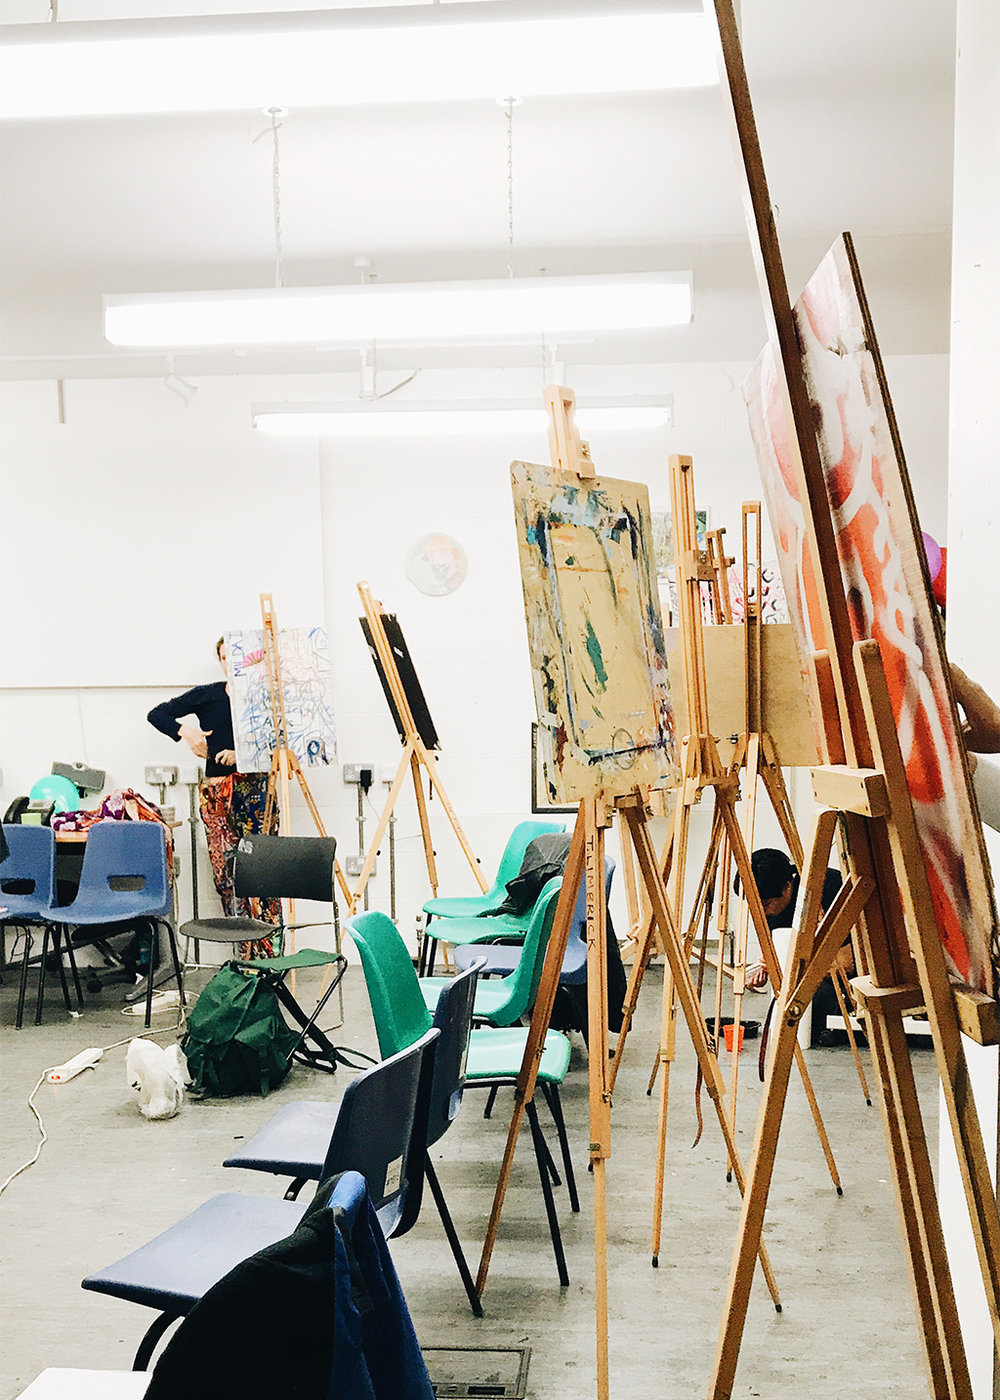 Easels and seats filled the perimeter of the studio